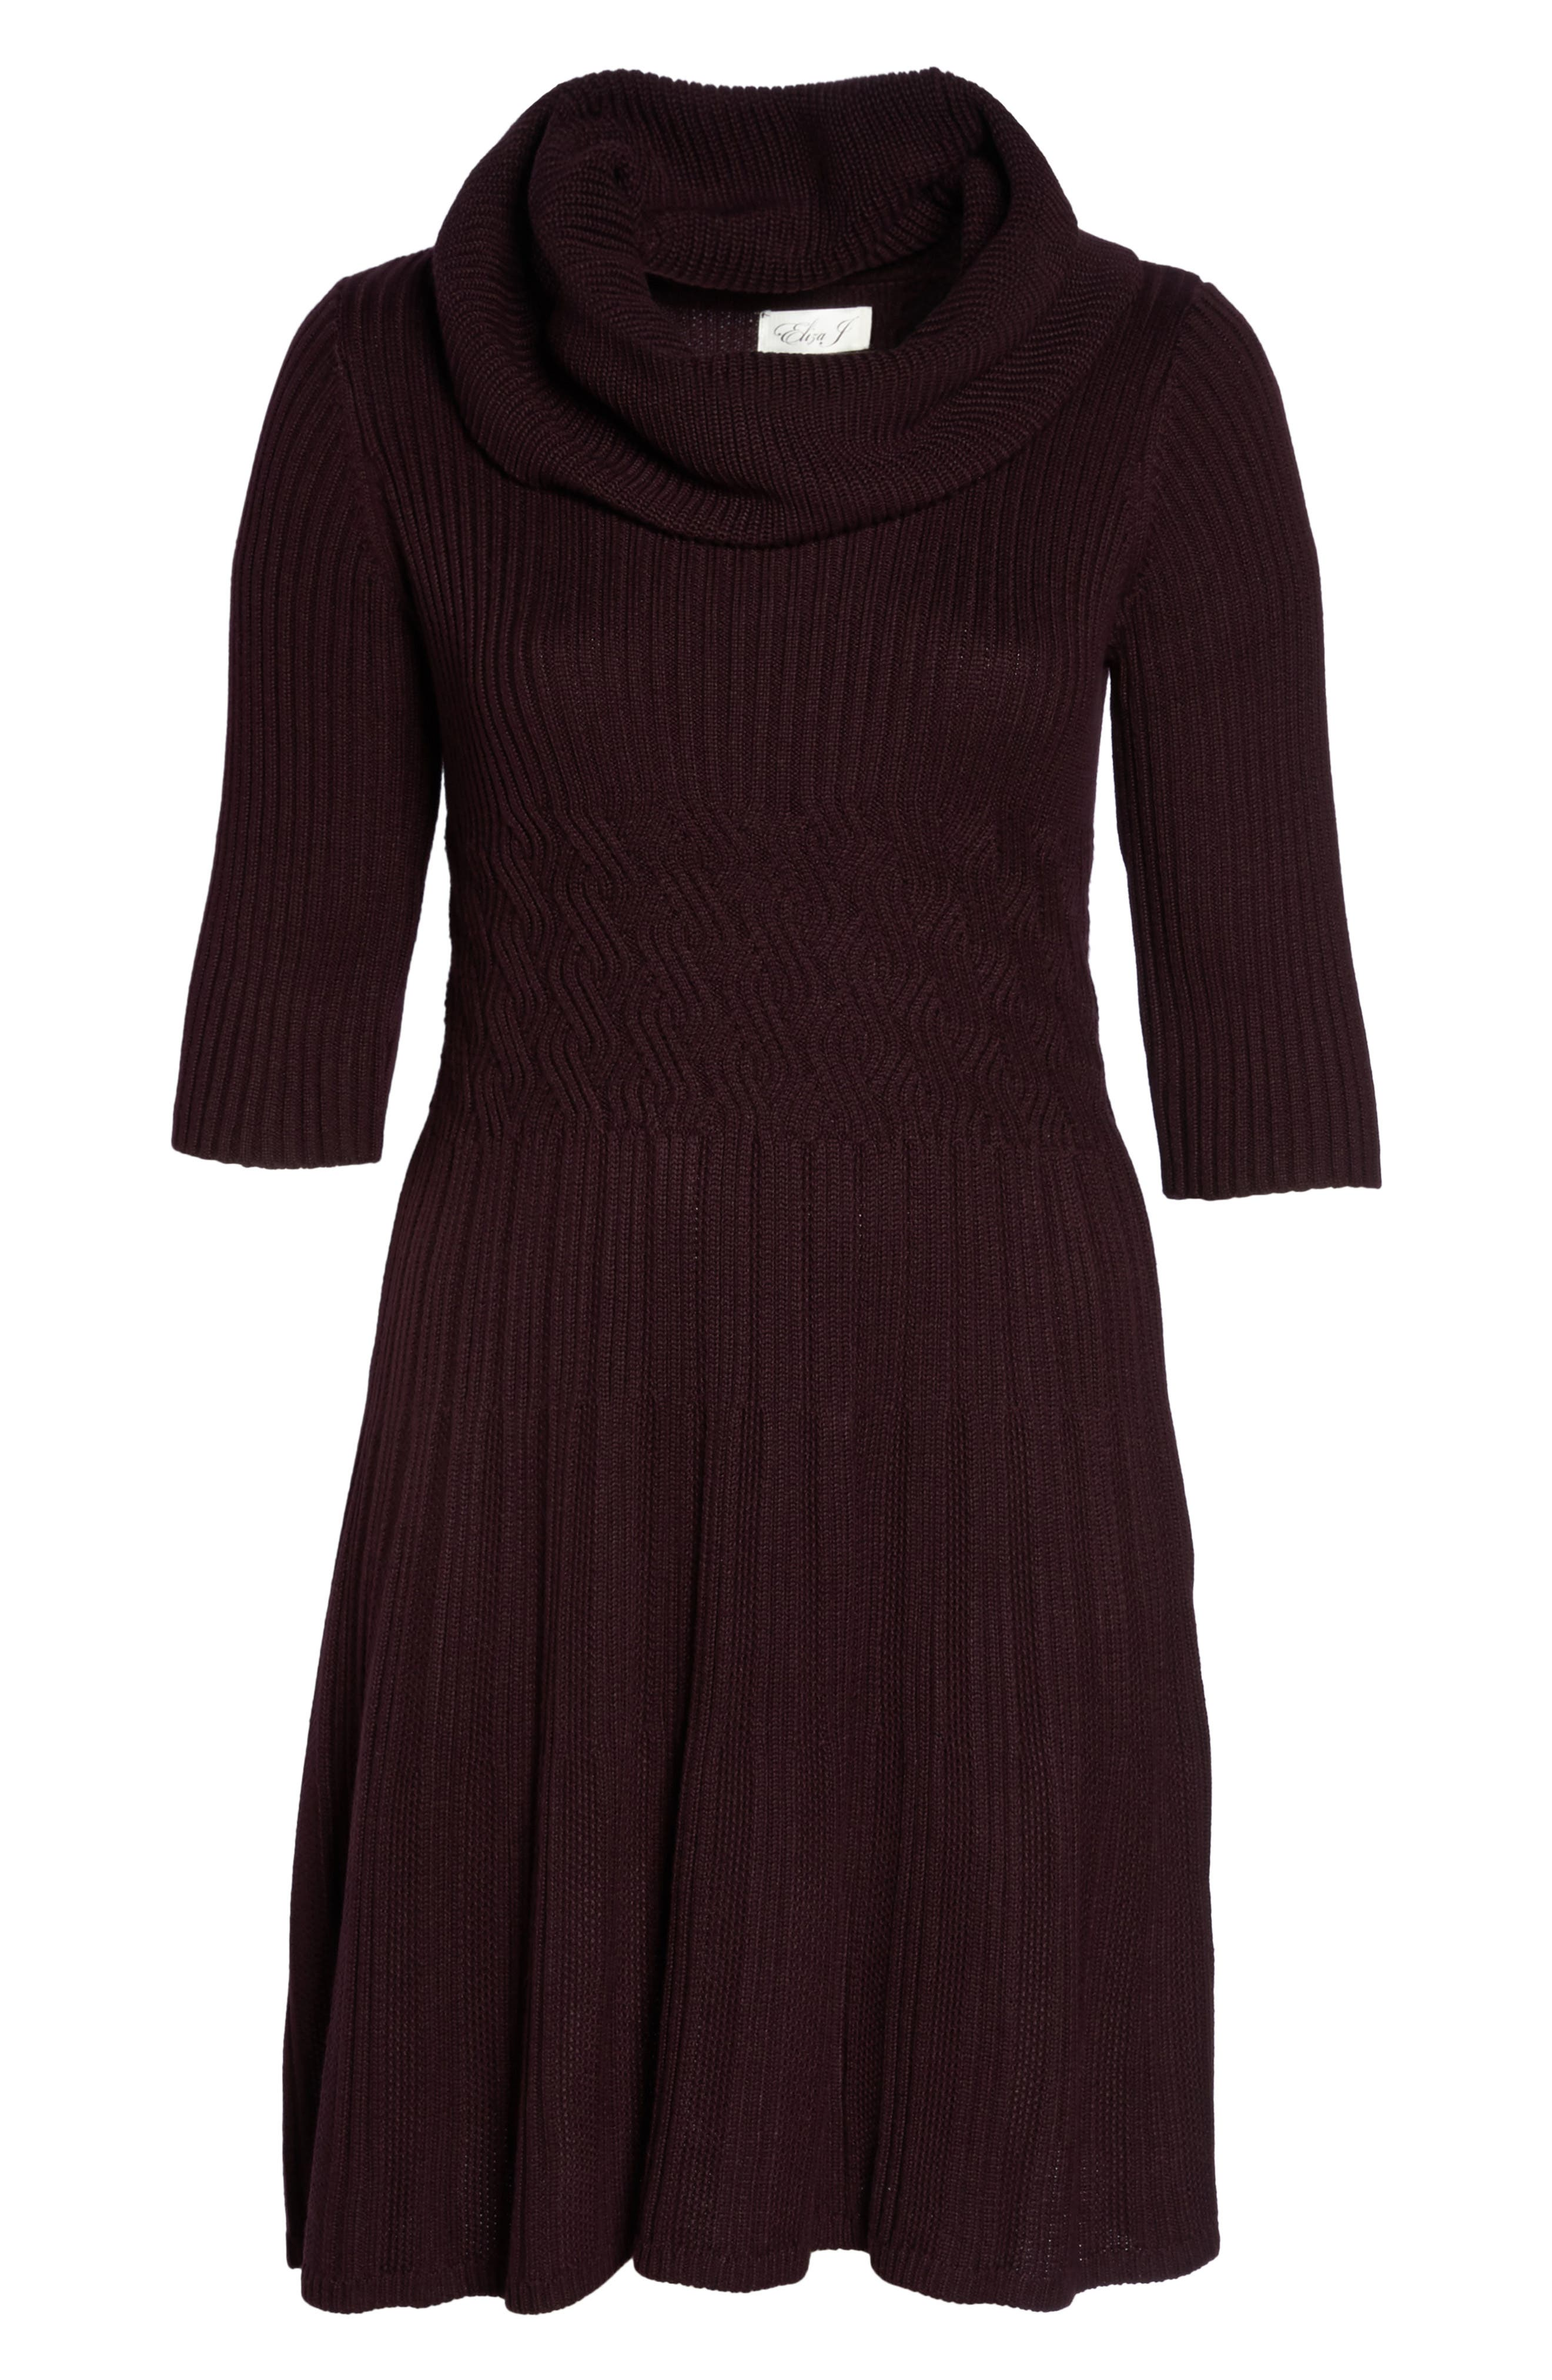 Ribbed Waist Fit & Flare Dress,                             Alternate thumbnail 6, color,                             Wine